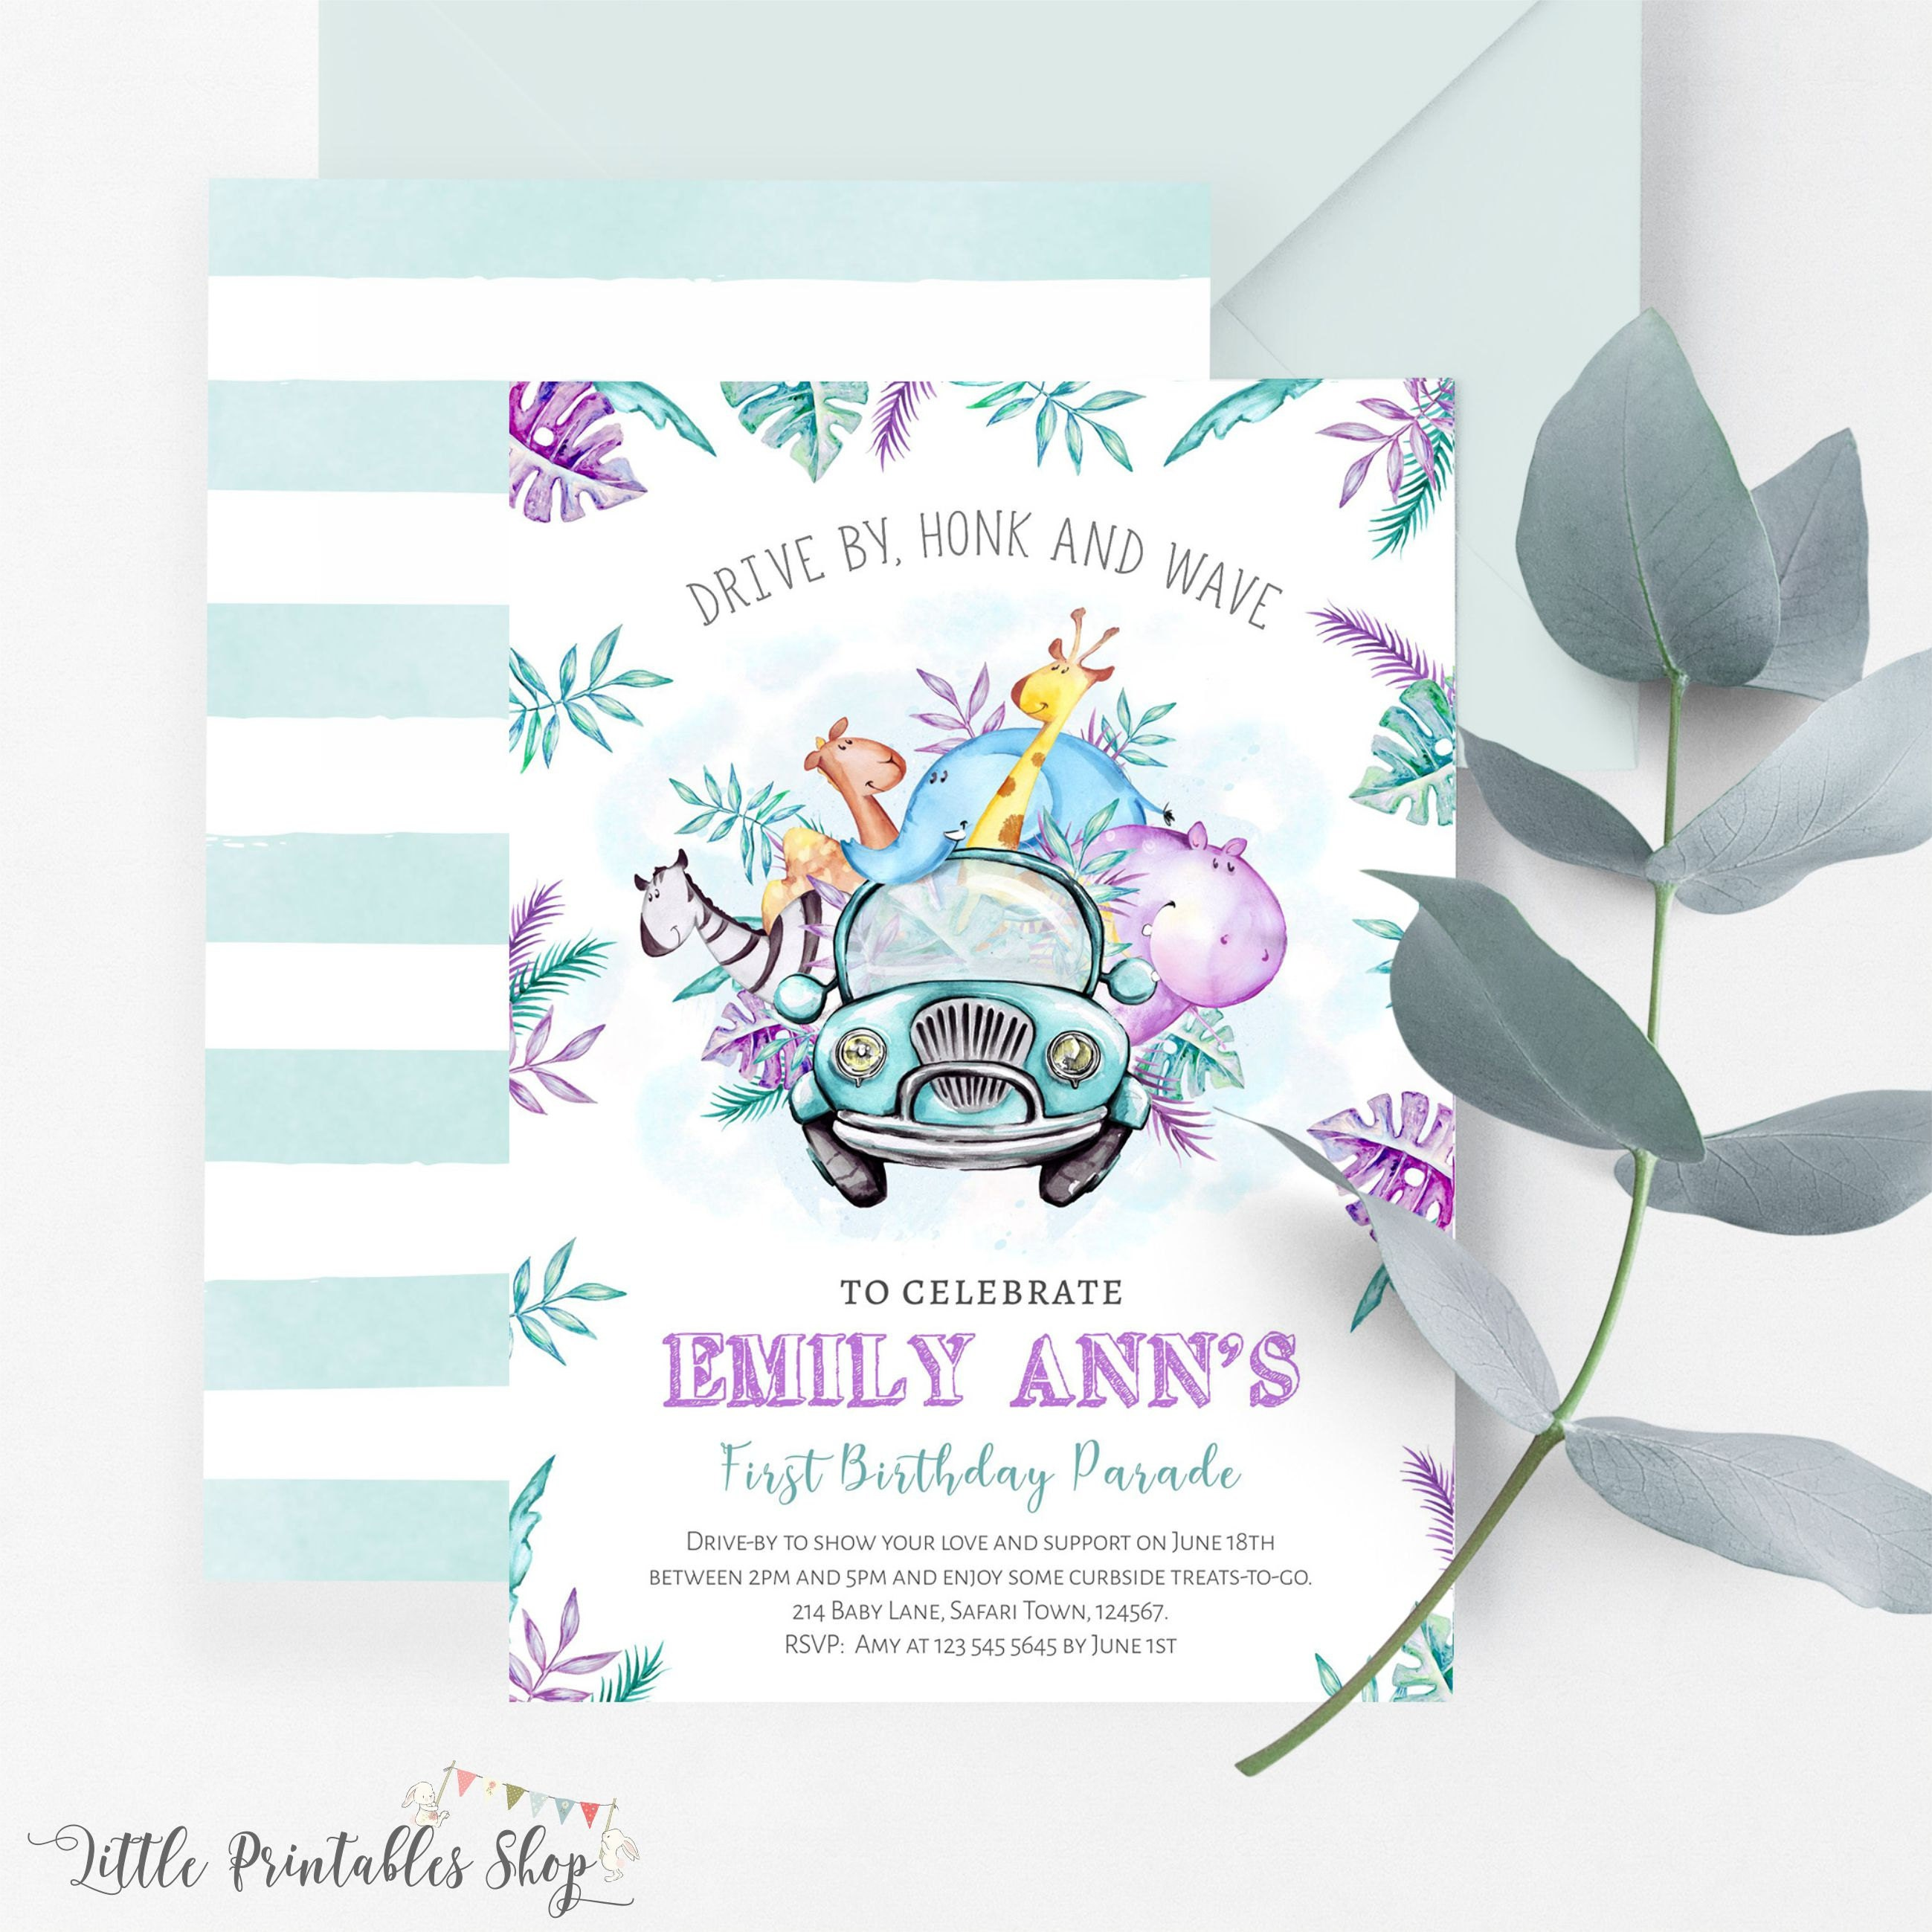 Drive By Invitation | Drive By Safari Birthday | Drive By Birthday Party Ideas | Little Printables Shop | Drive Through Birthday | Drive By First Birthday Party Invite | Honk and Wave Invitation | First Birthday Party Ideas Quarantine | Social Distance Party Invitation